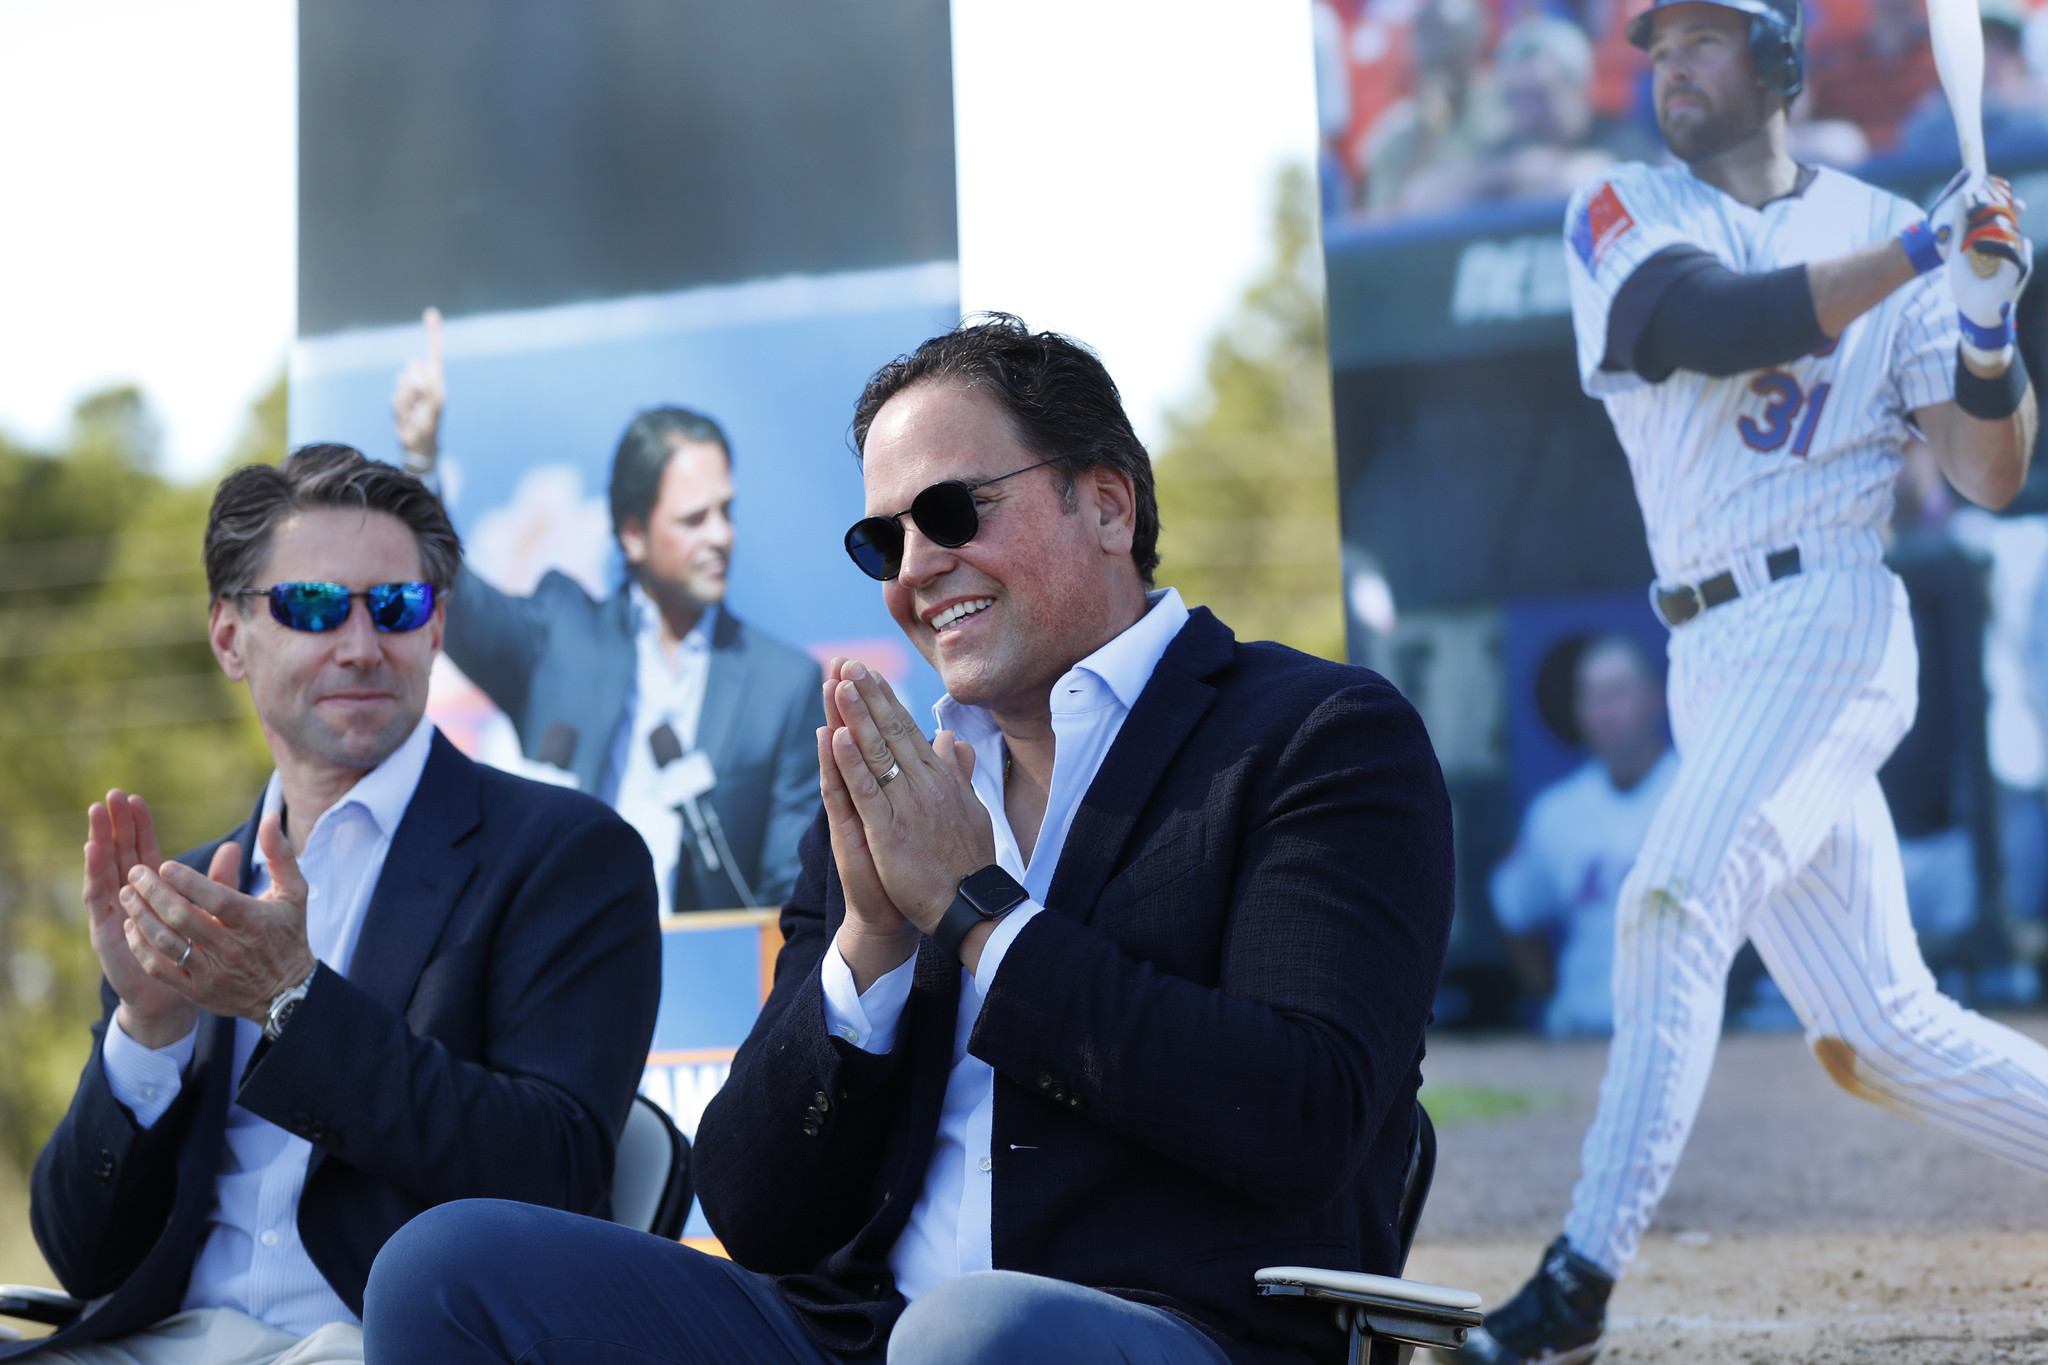 Mike Piazza sticks up for the Wilpons, tells Mets fans to stay positive and patient